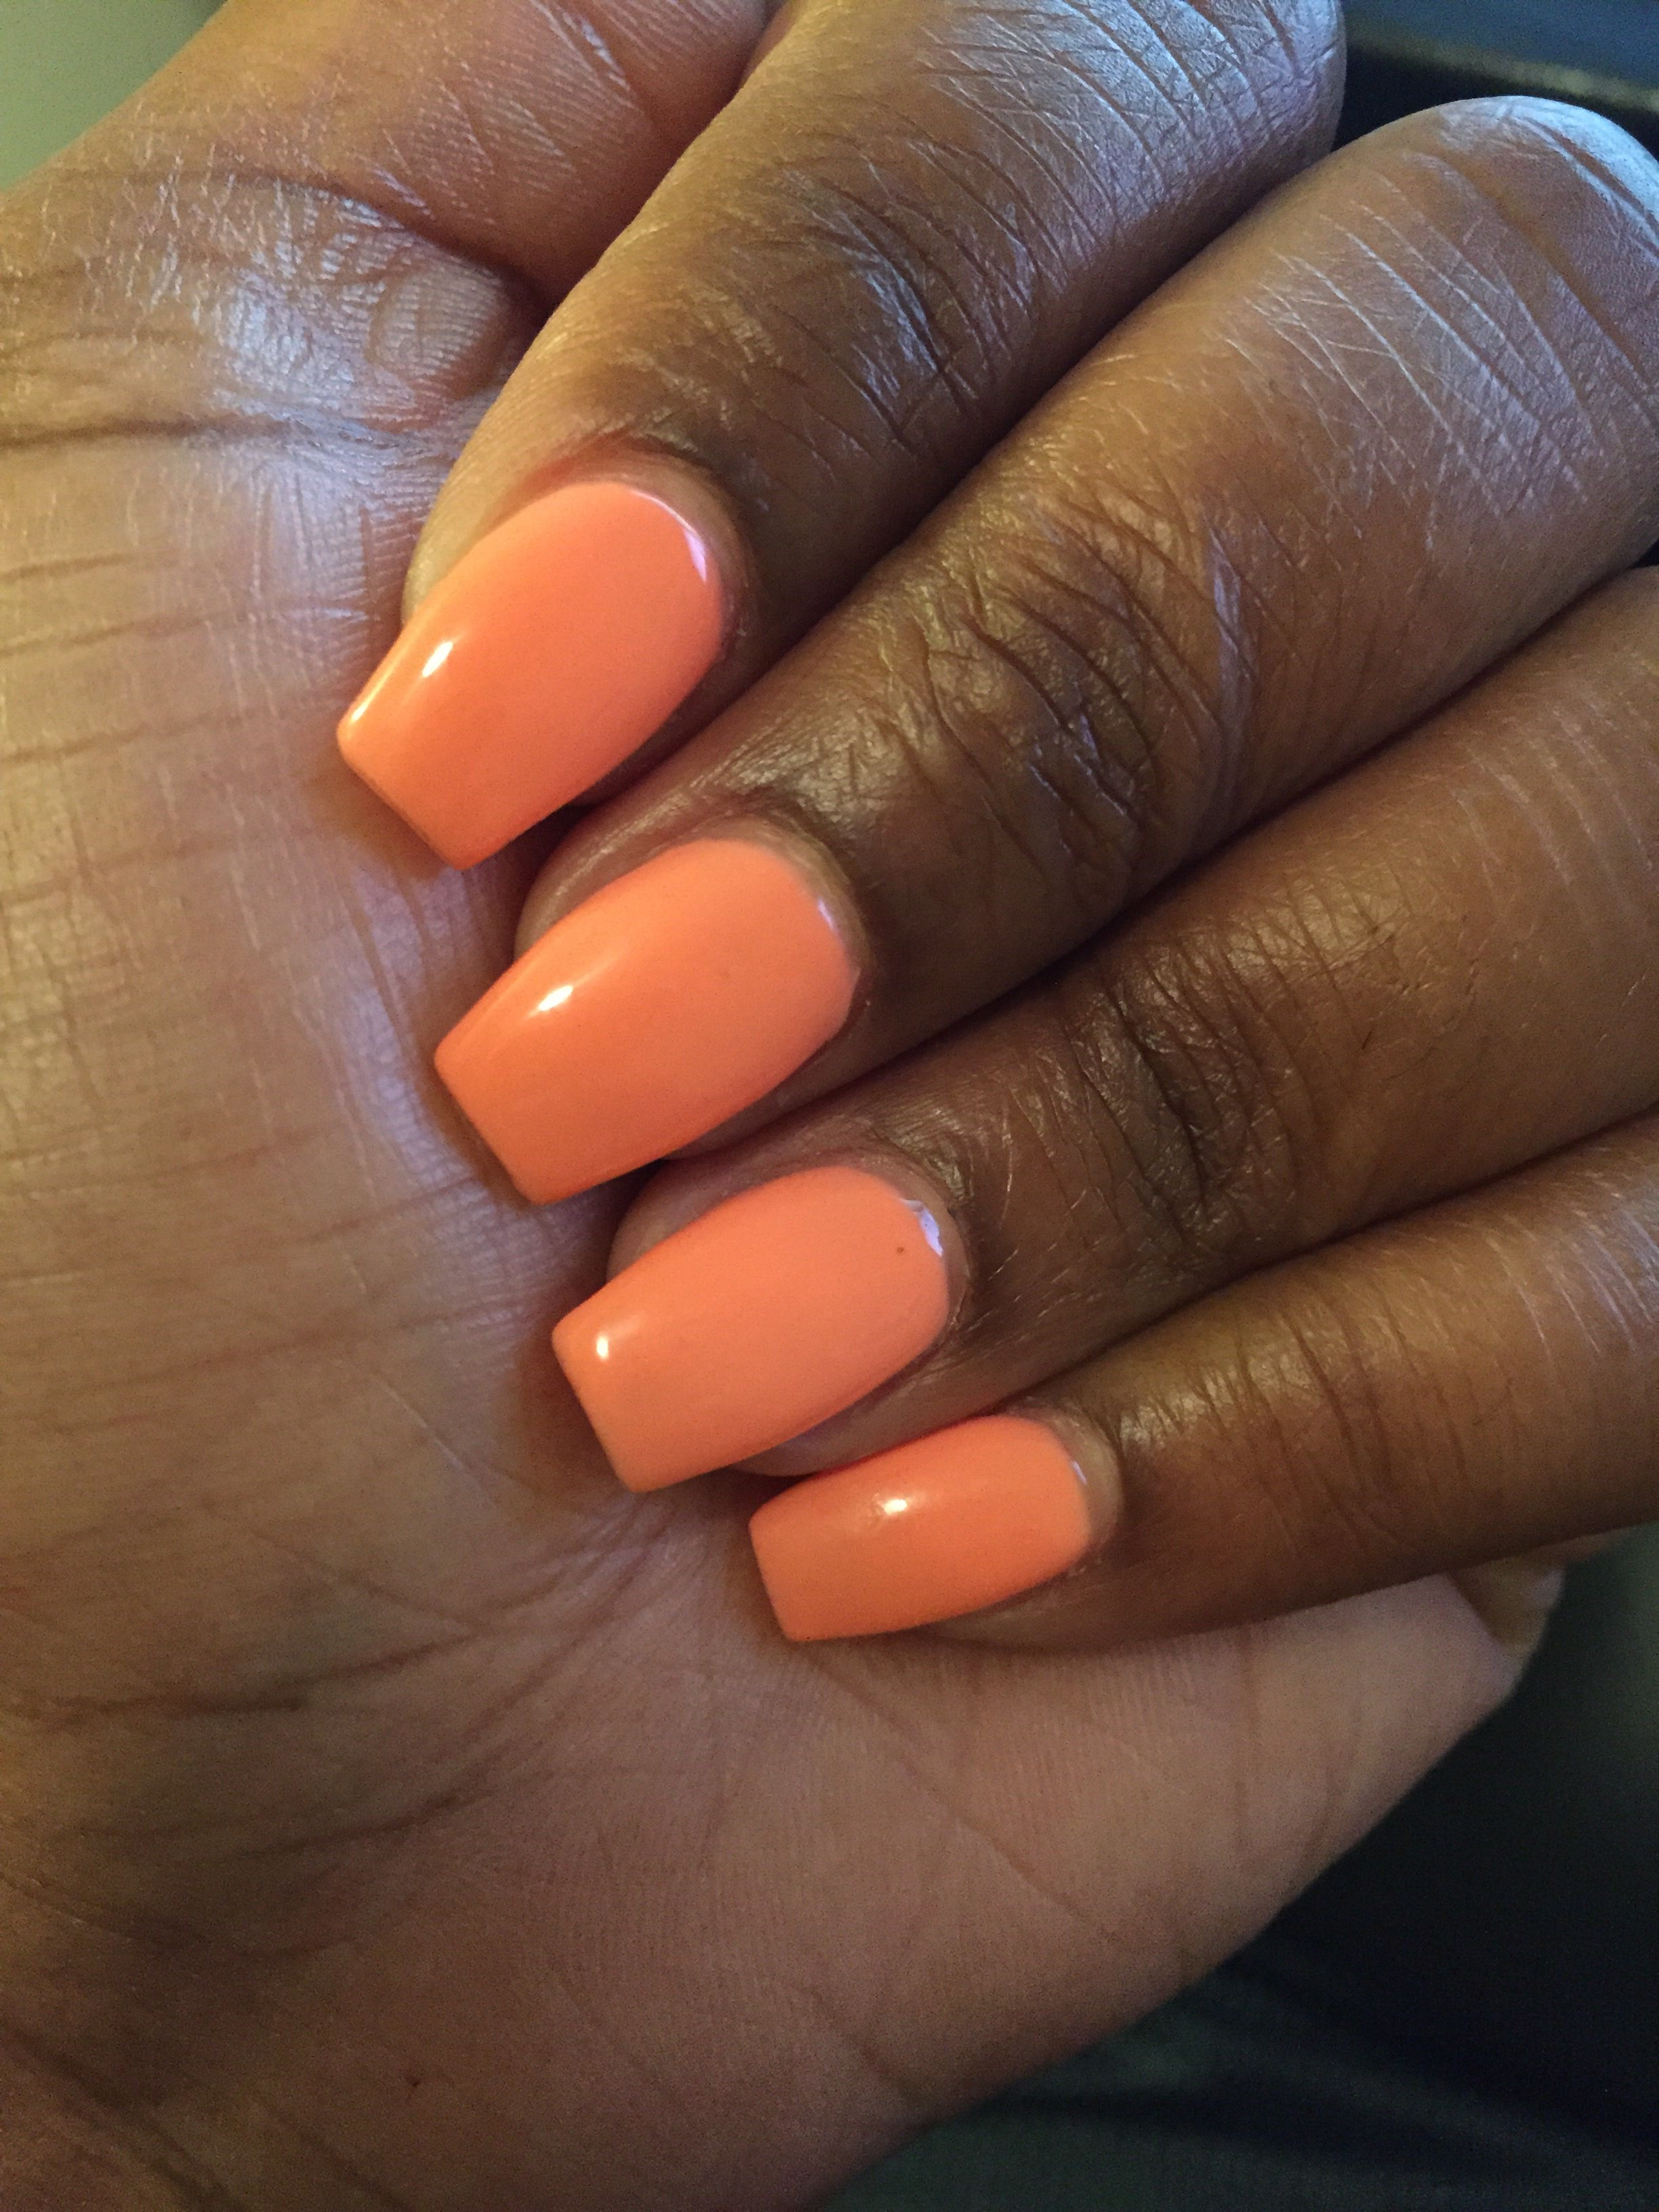 Coral Short Ballerina Shaped Acrylics Acrylic Nails Coffin Short Orange Acrylic Nails Coffin